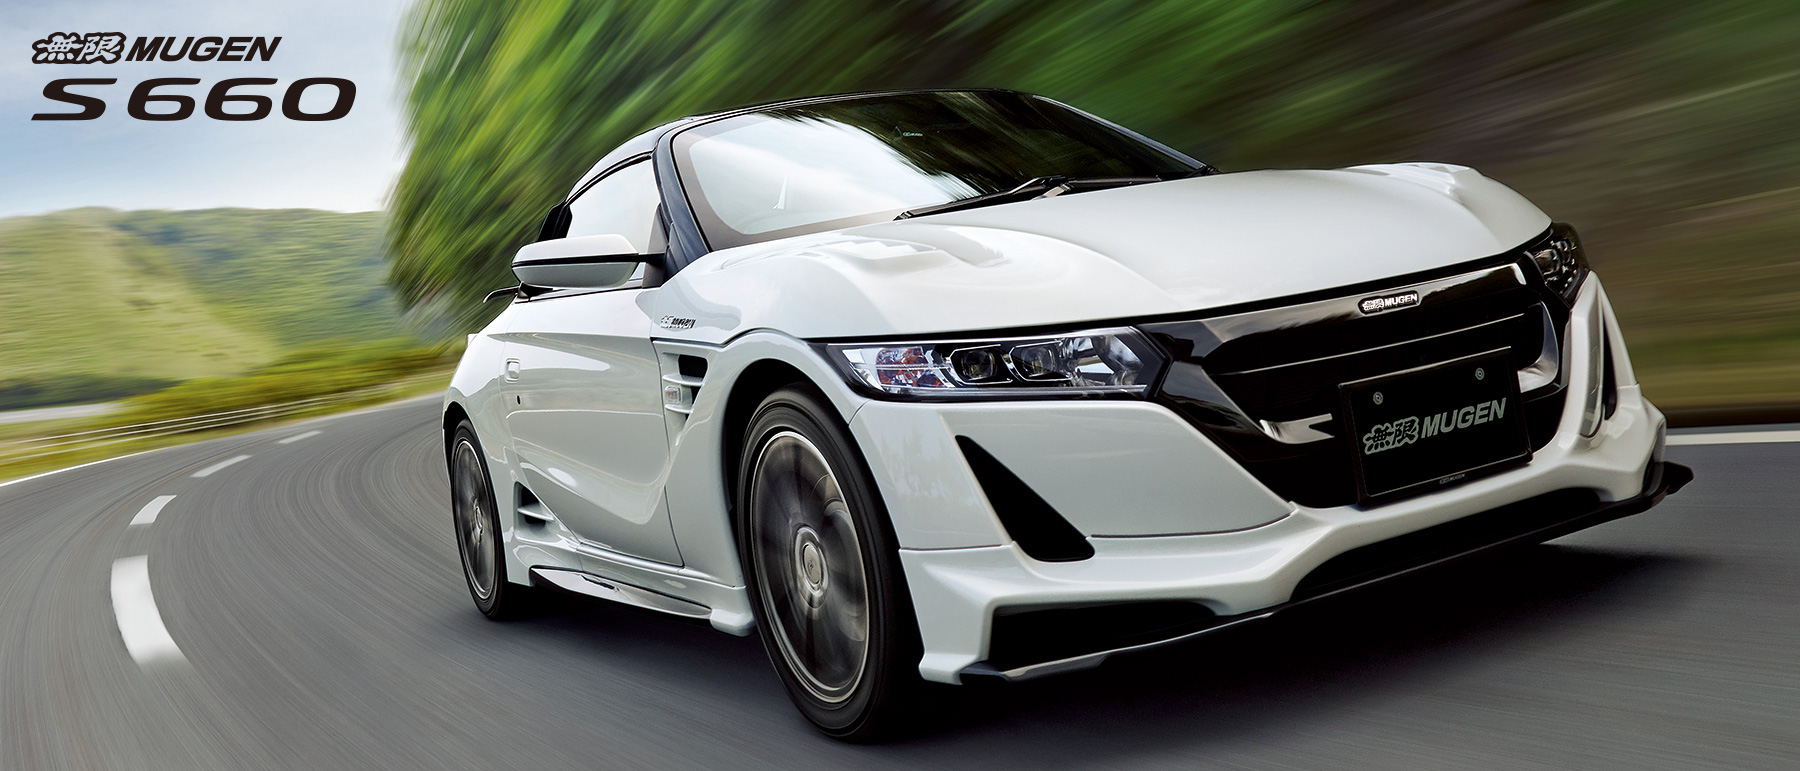 Honda S660 Mugen - 2016 - front / avant - on road / sur route